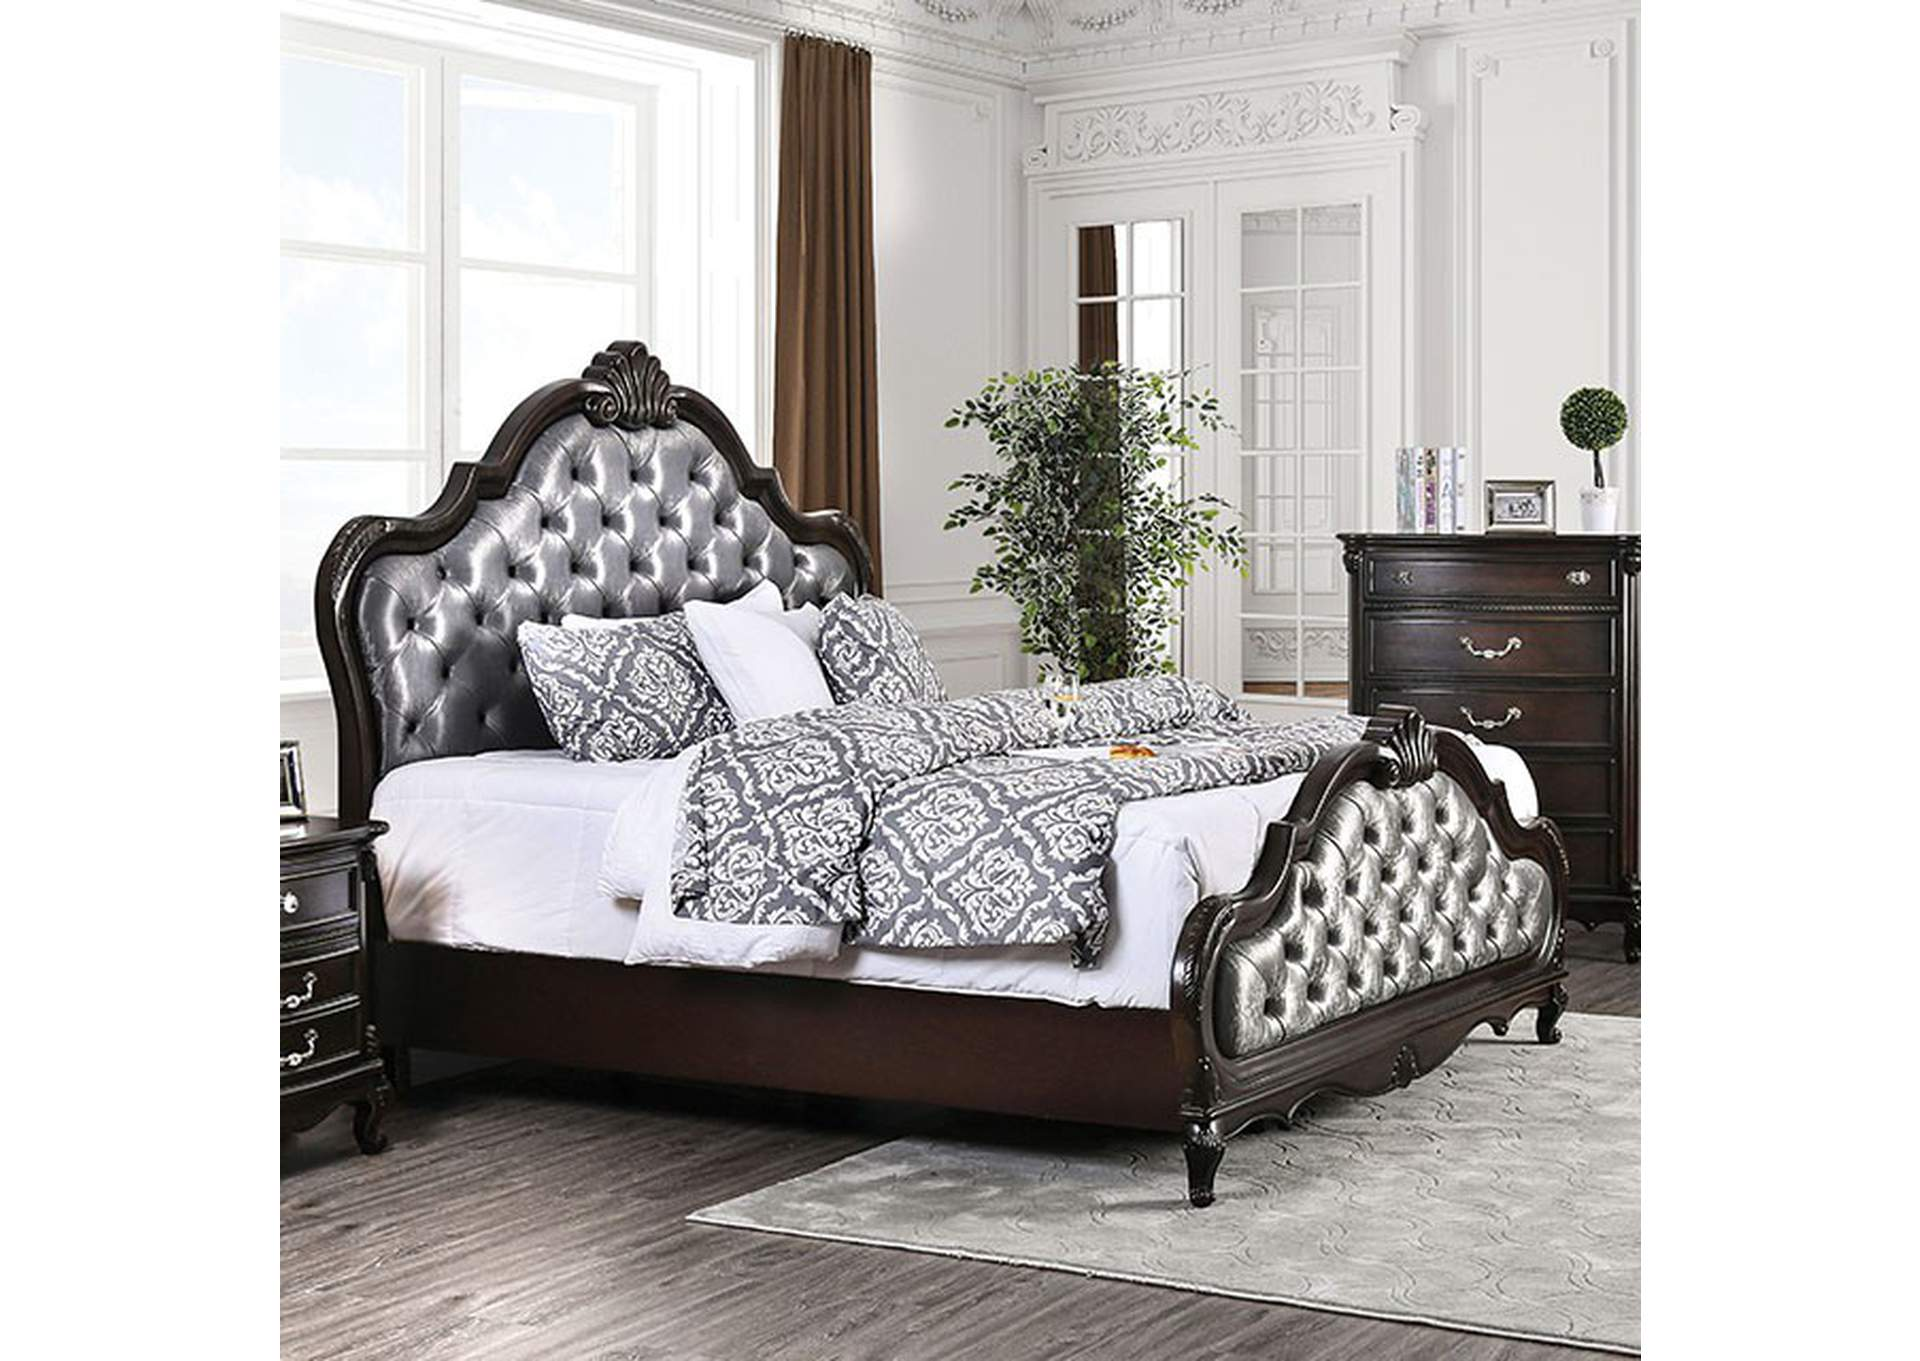 Bethesda Espresso Upholstered Queen Panel Bed,Furniture of America